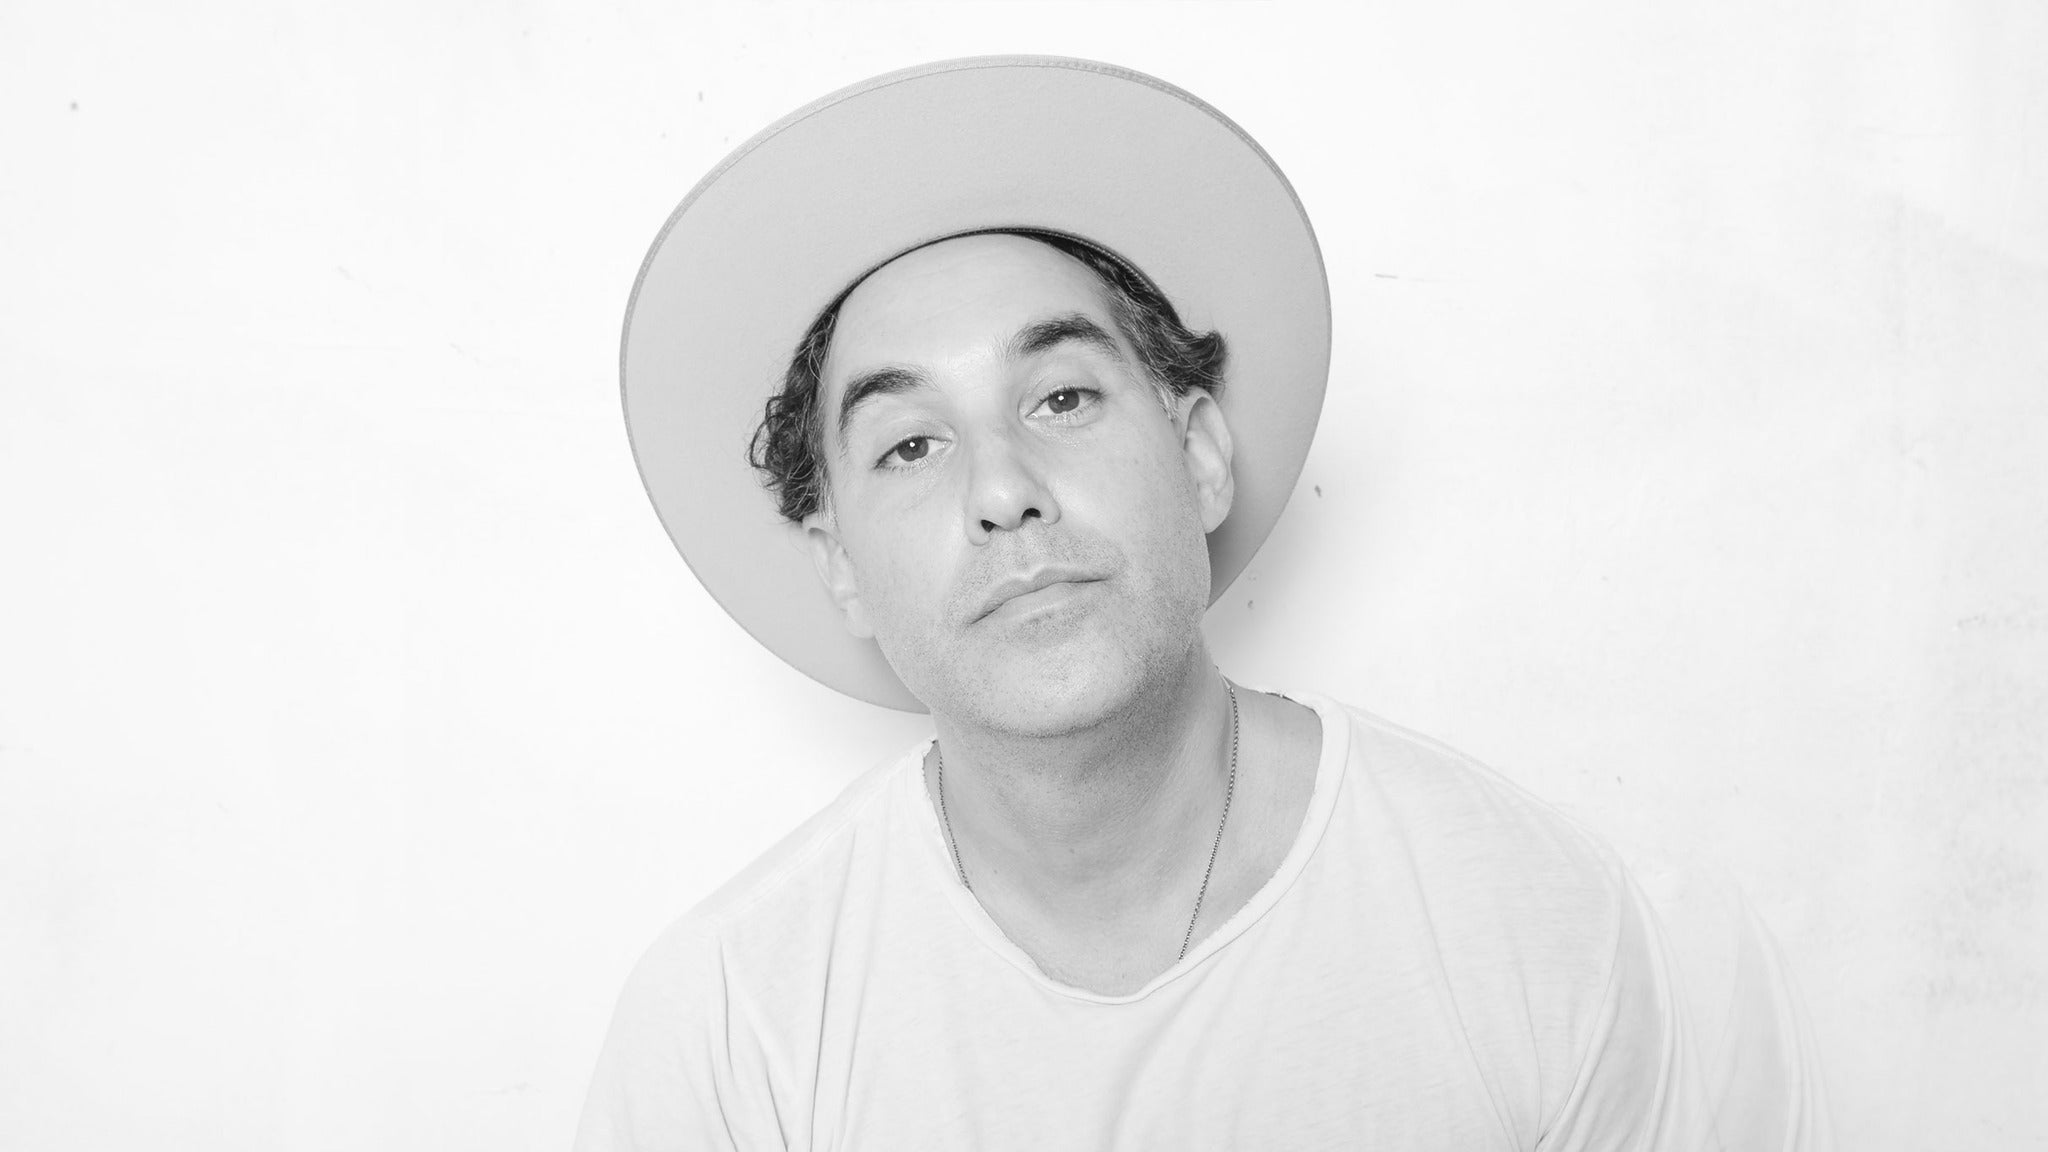 Joshua Radin presale code for early tickets in Madison